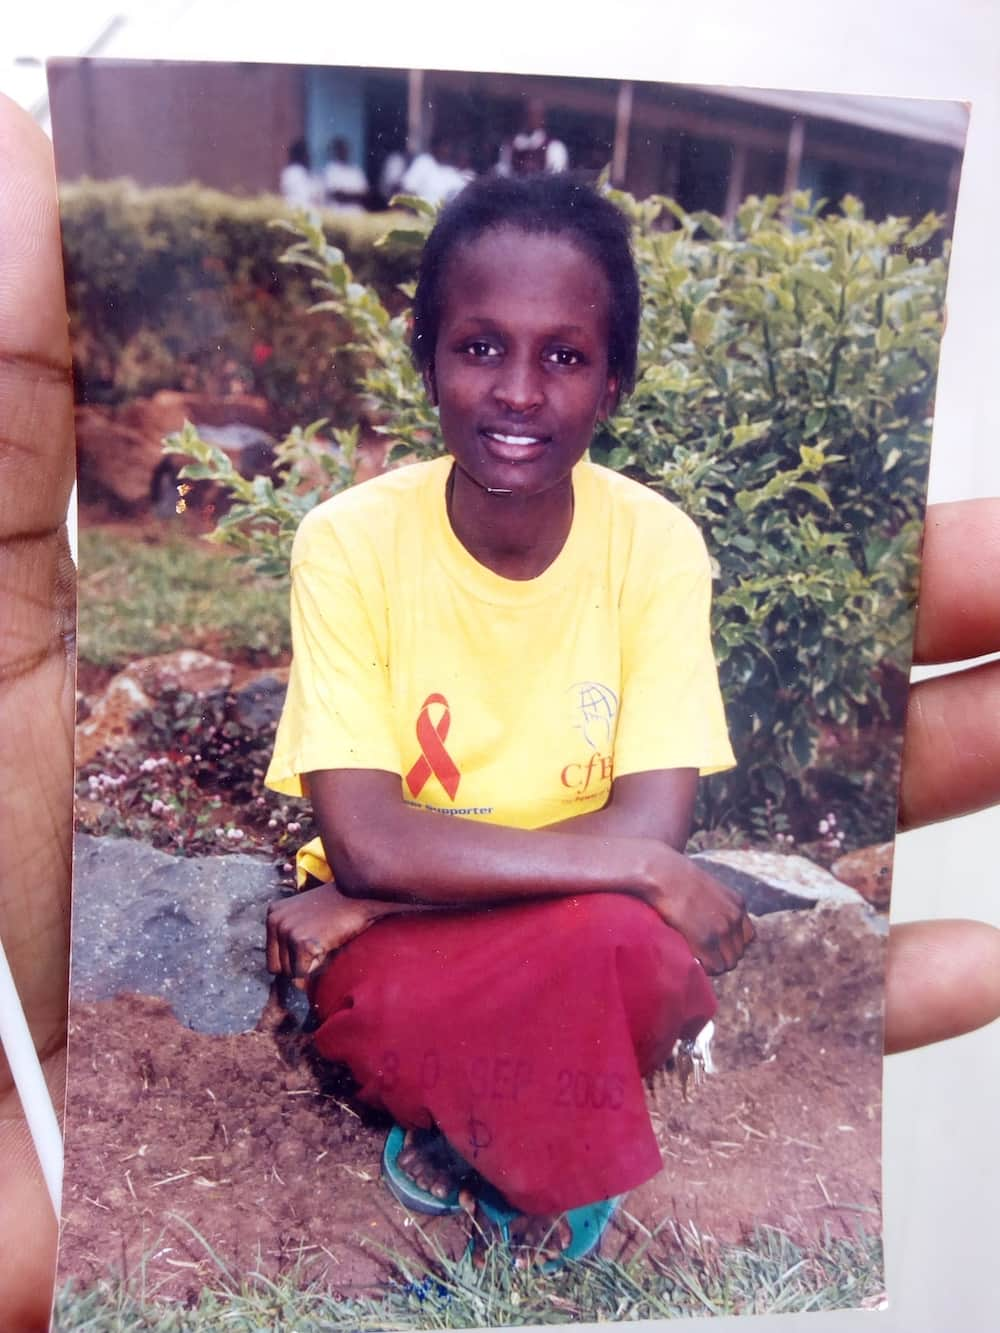 Actress Rose Nyabhate learns after 17 years her close friend paid her school fees